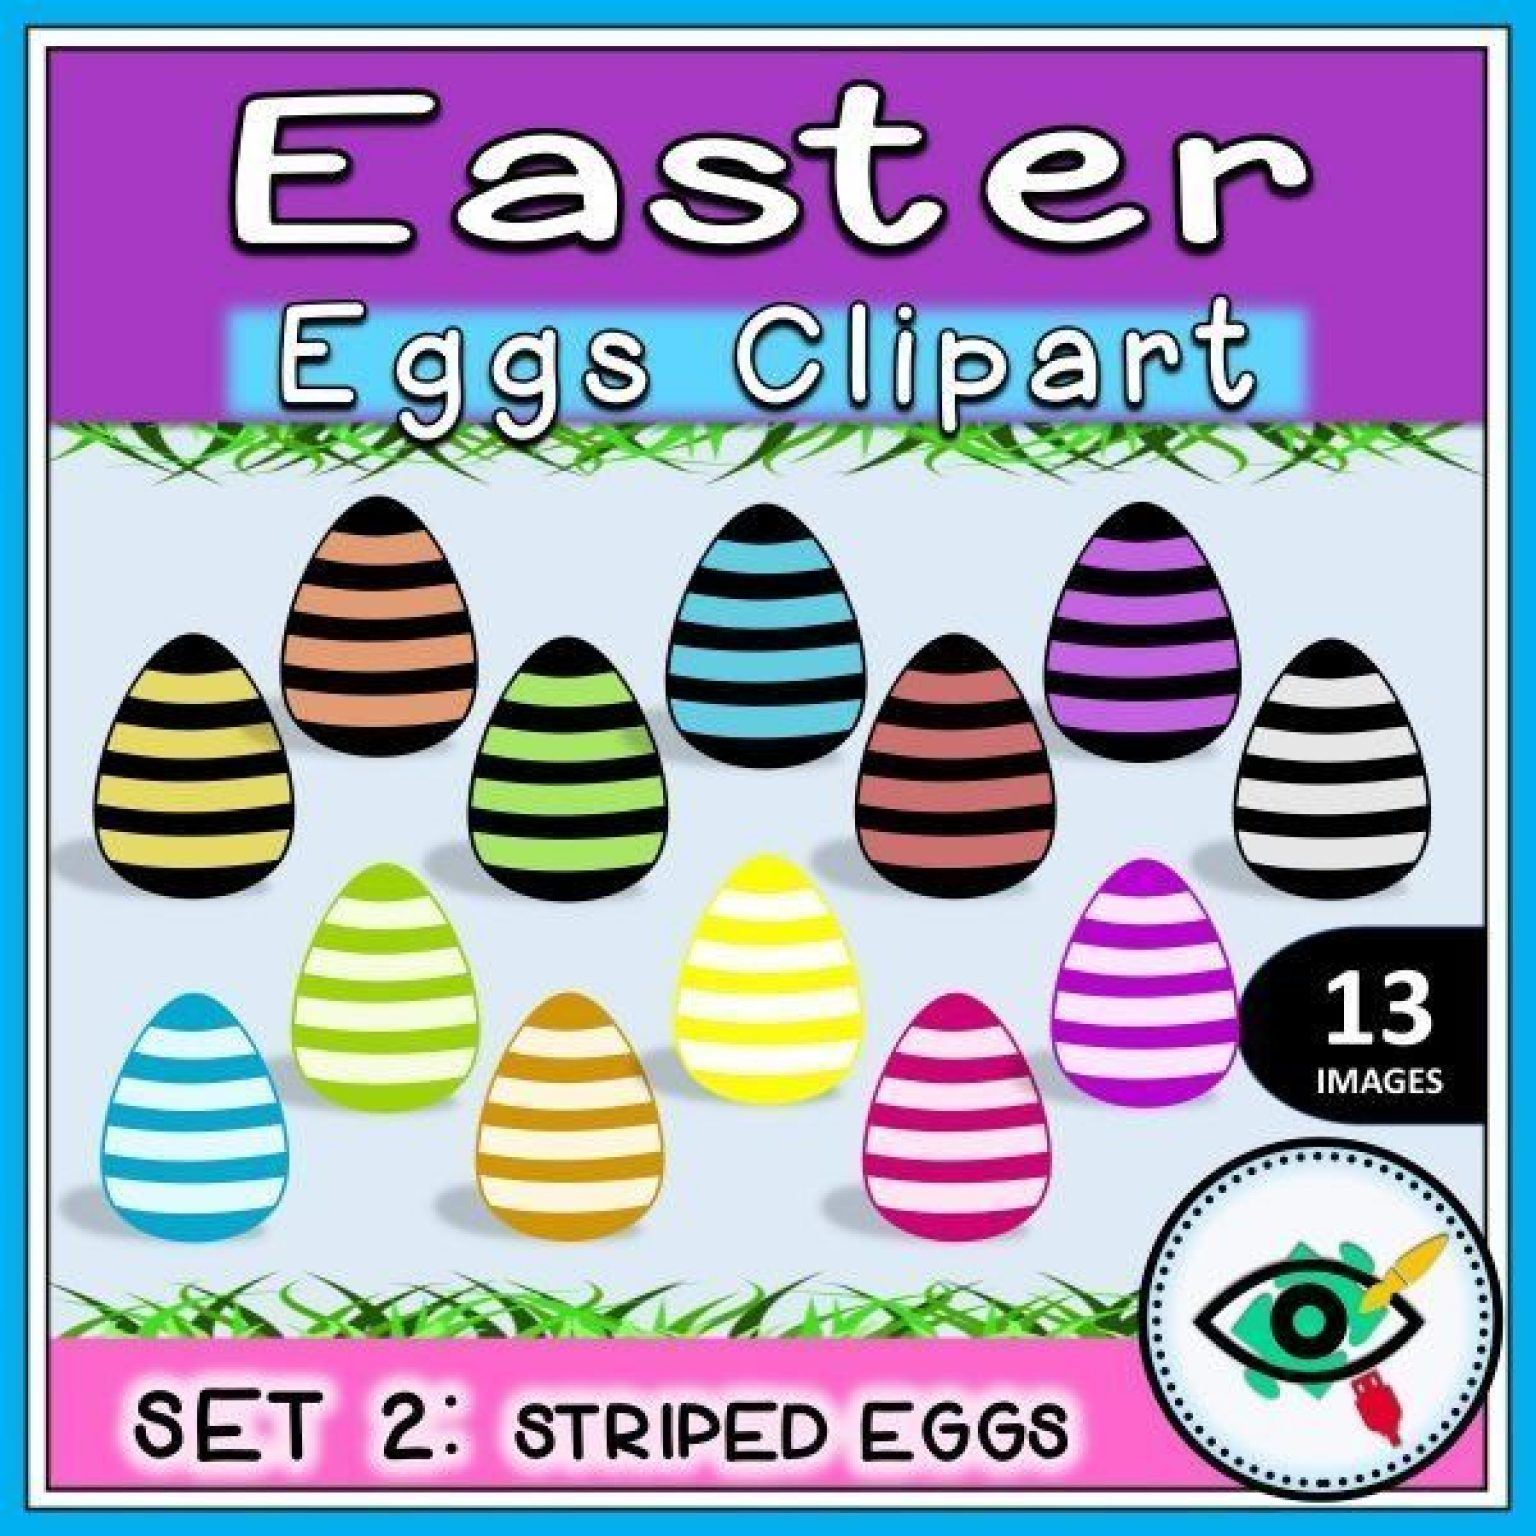 easter-eggs-clipart-title2